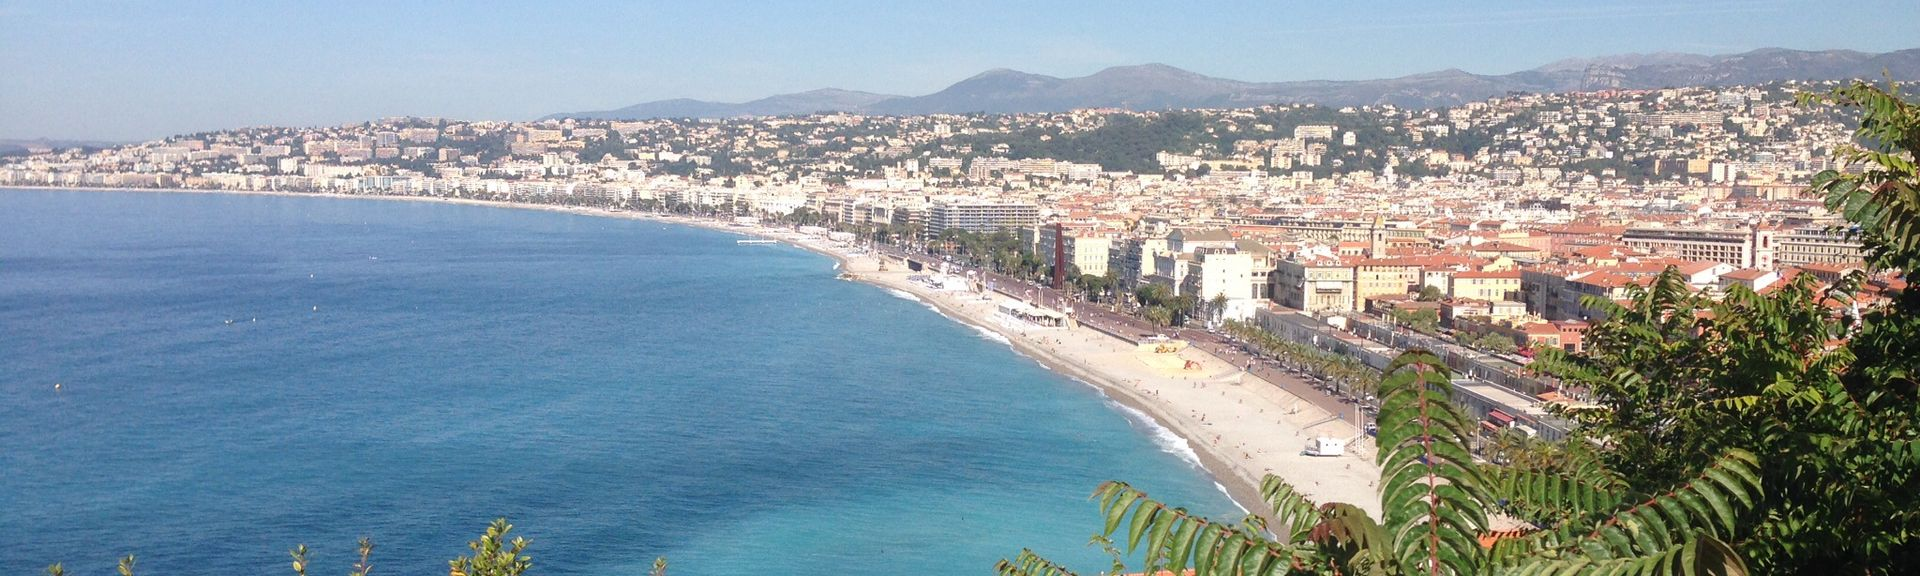 Carre d'Or, Nice, Alpes-Maritimes, France